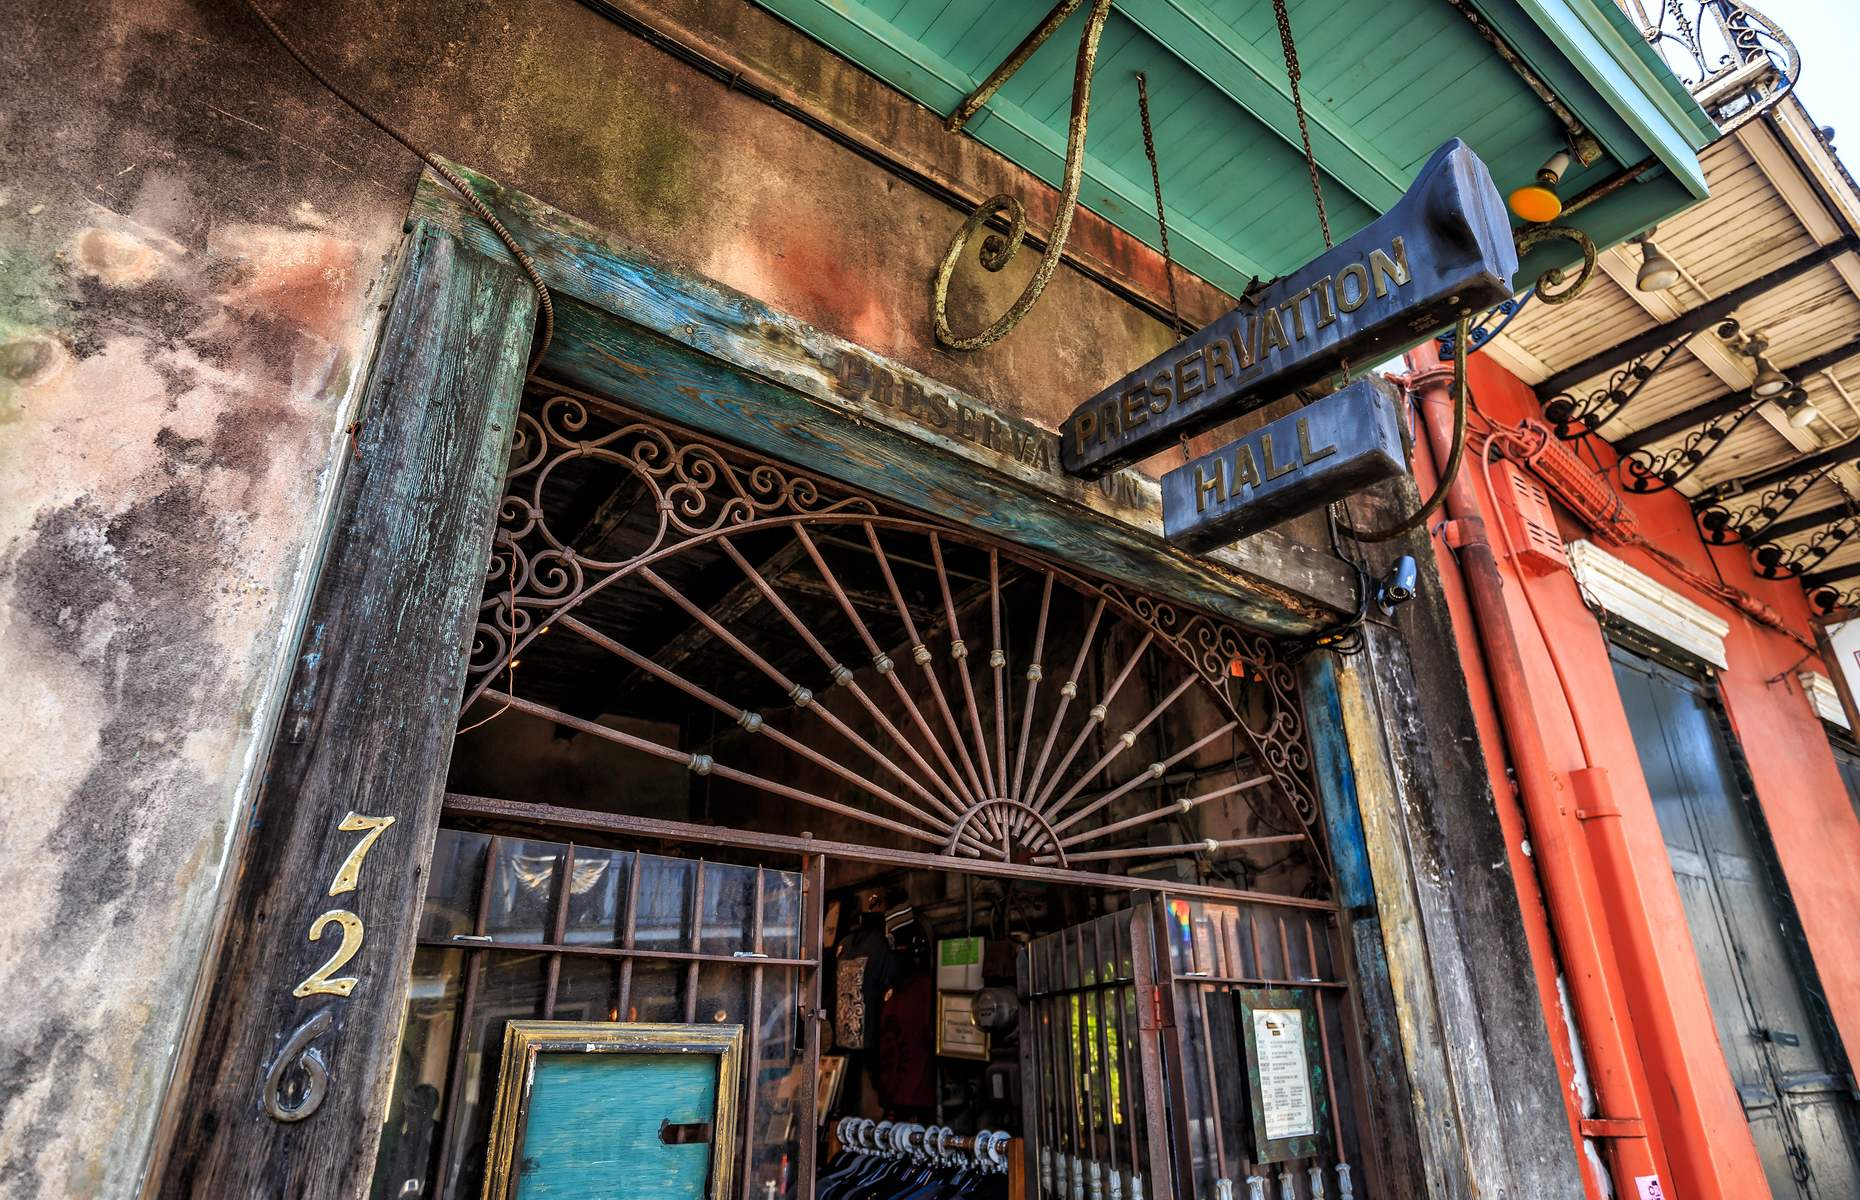 Jazz club in New Orleans (image: f11photo/Shutterstock)